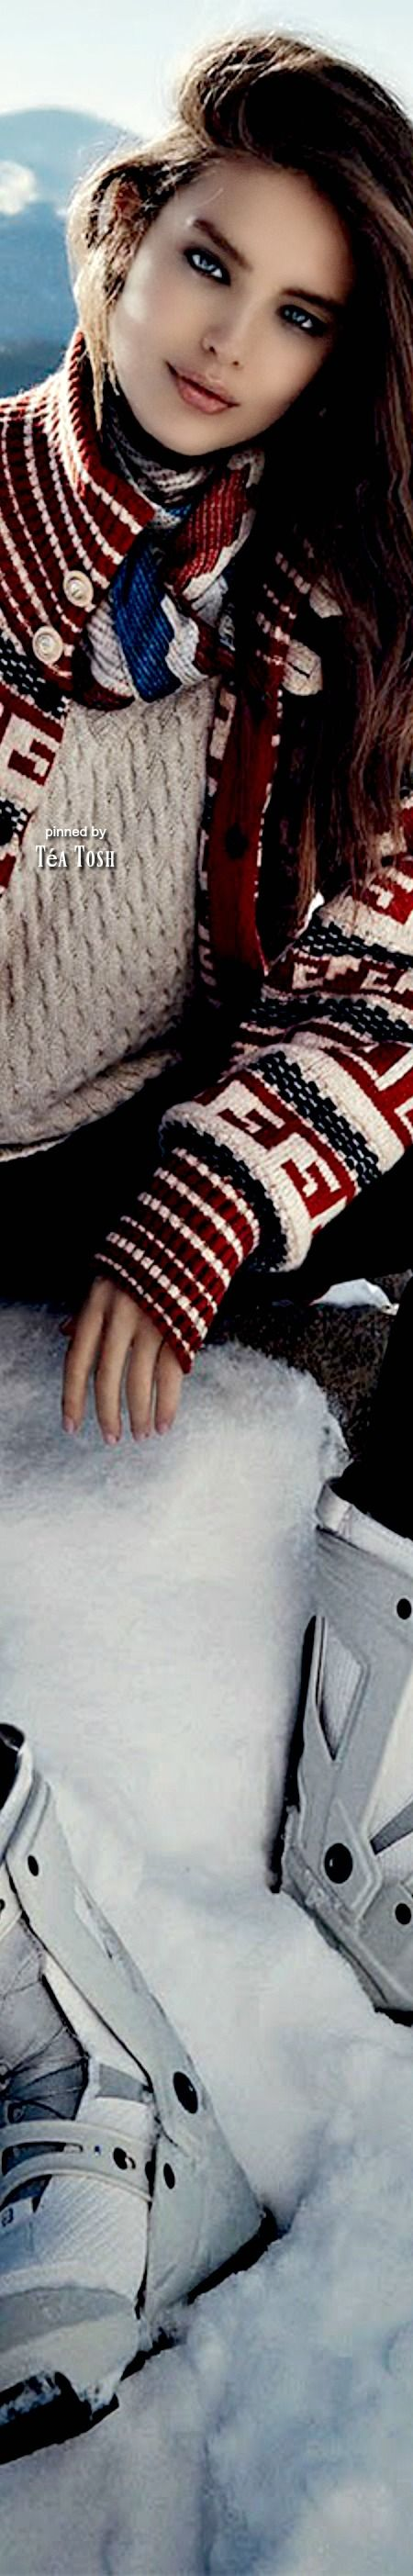 ❇Téa Tosh❇ Let it Snow: Emily Didonato by Benny Horne